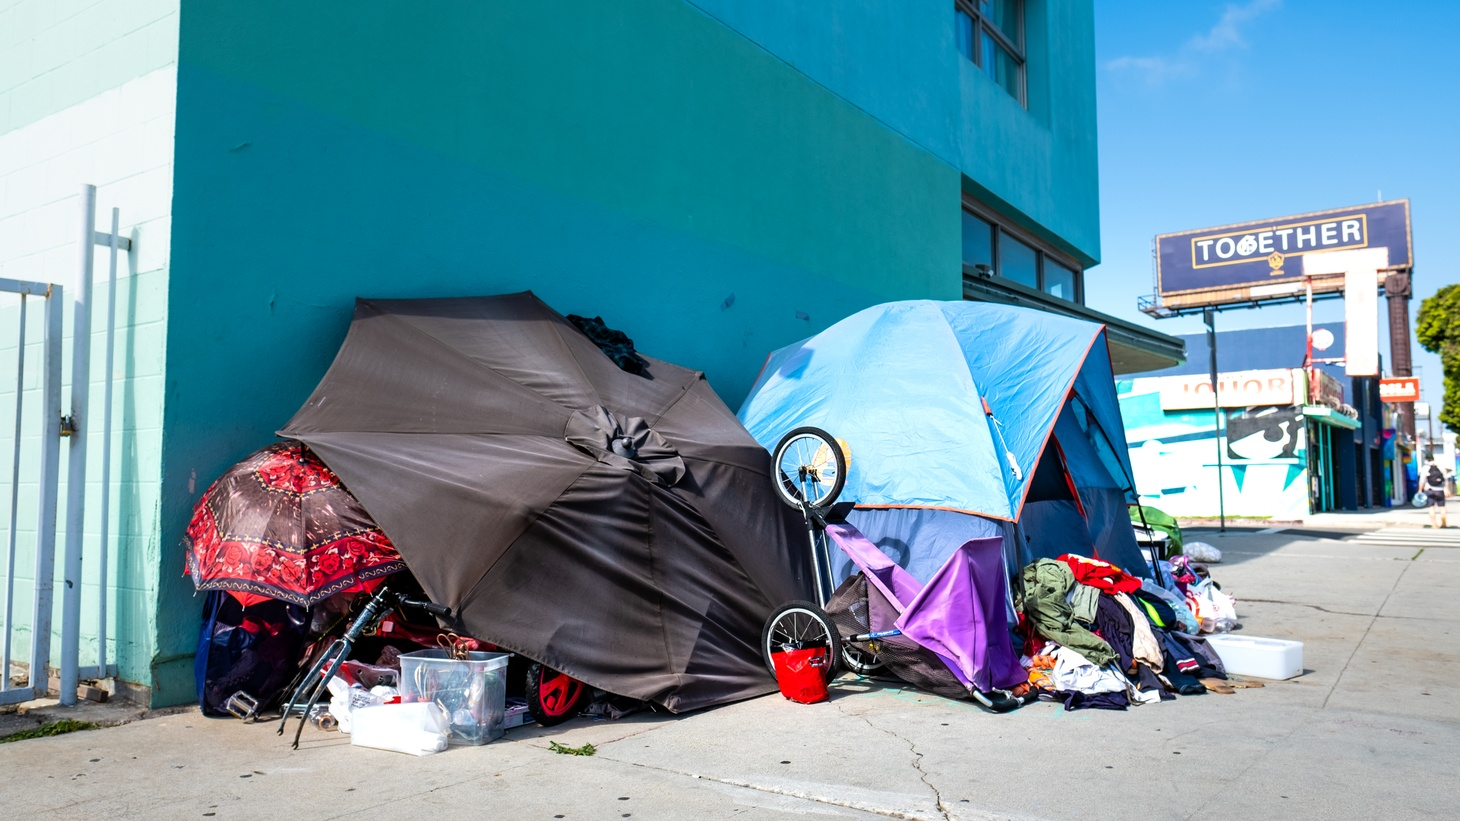 Many people are still living on the streets during COVID-19. Will Project Roomkey successfully reach its goal of putting 15,000 of them into hotel rooms?